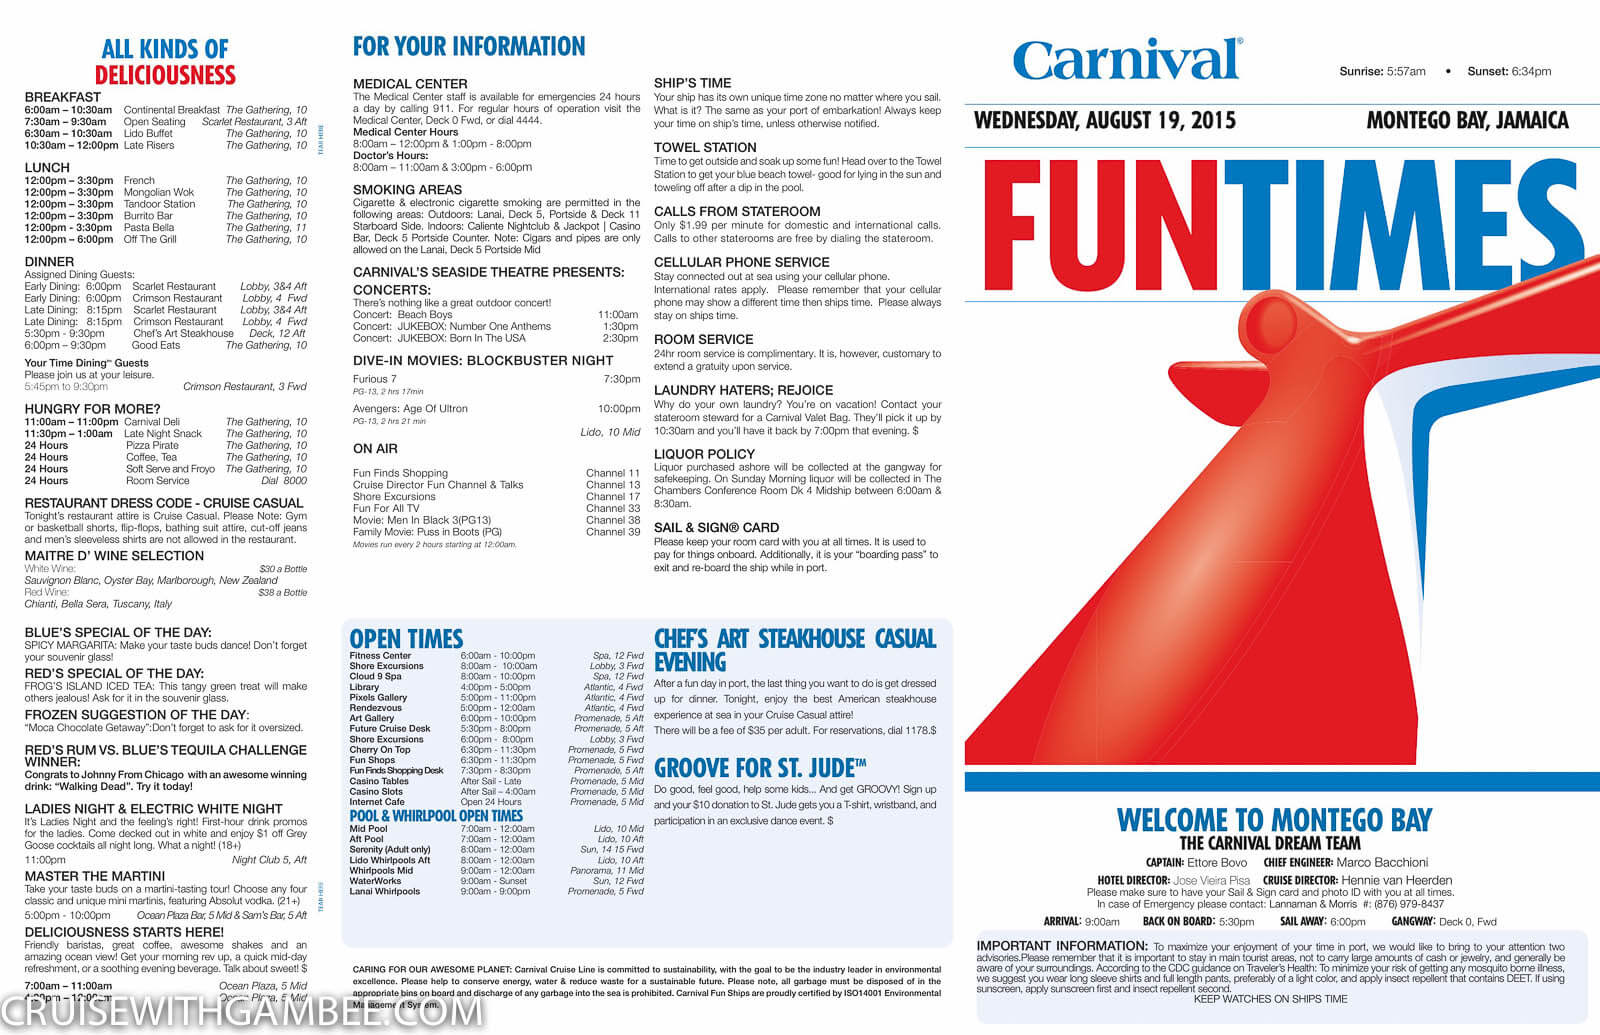 Carnival Dream FunTimes Daily Itinerary  Cruise With Gambee